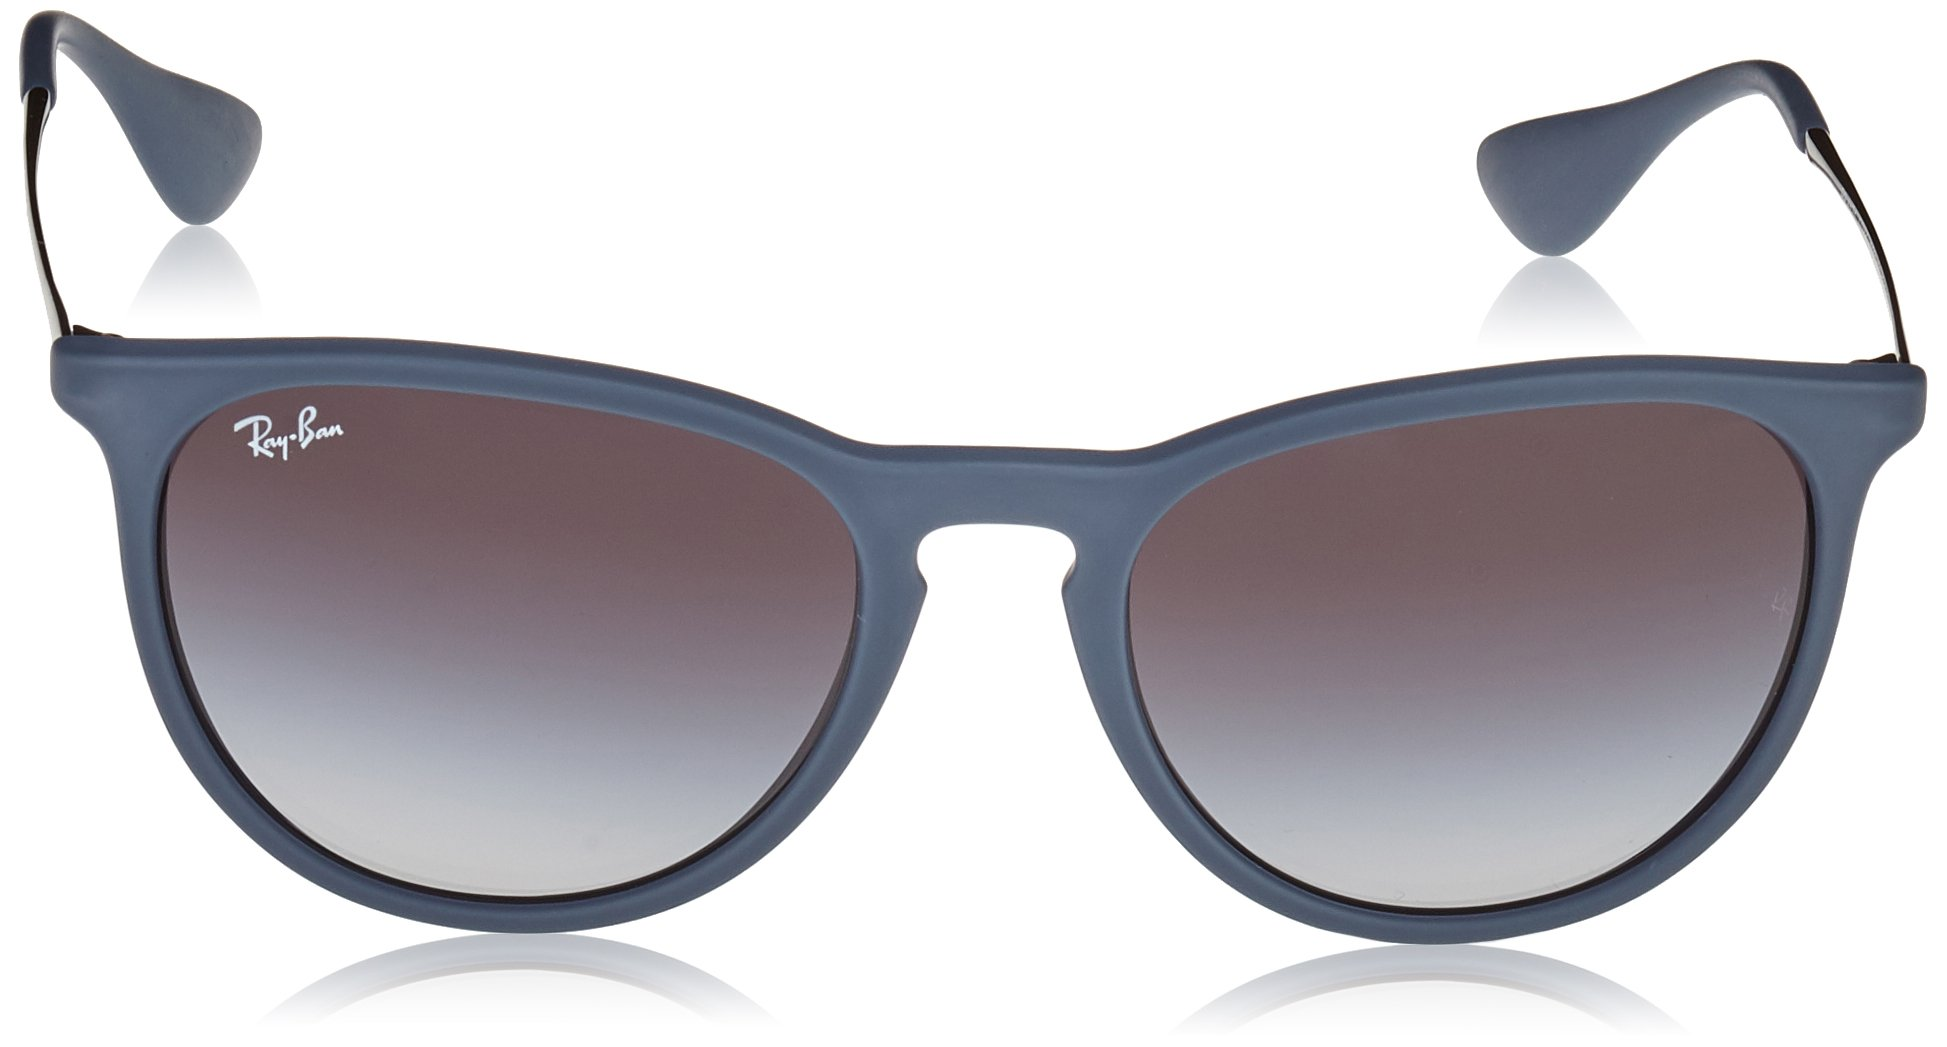 4599fb2de17 Ray-Ban ERIKA - RUBBER BLUE Frame GREY GRADIENT Lenses 54mm Non-Polarized -  0RB4171-60028G   Sunglasses   Clothing